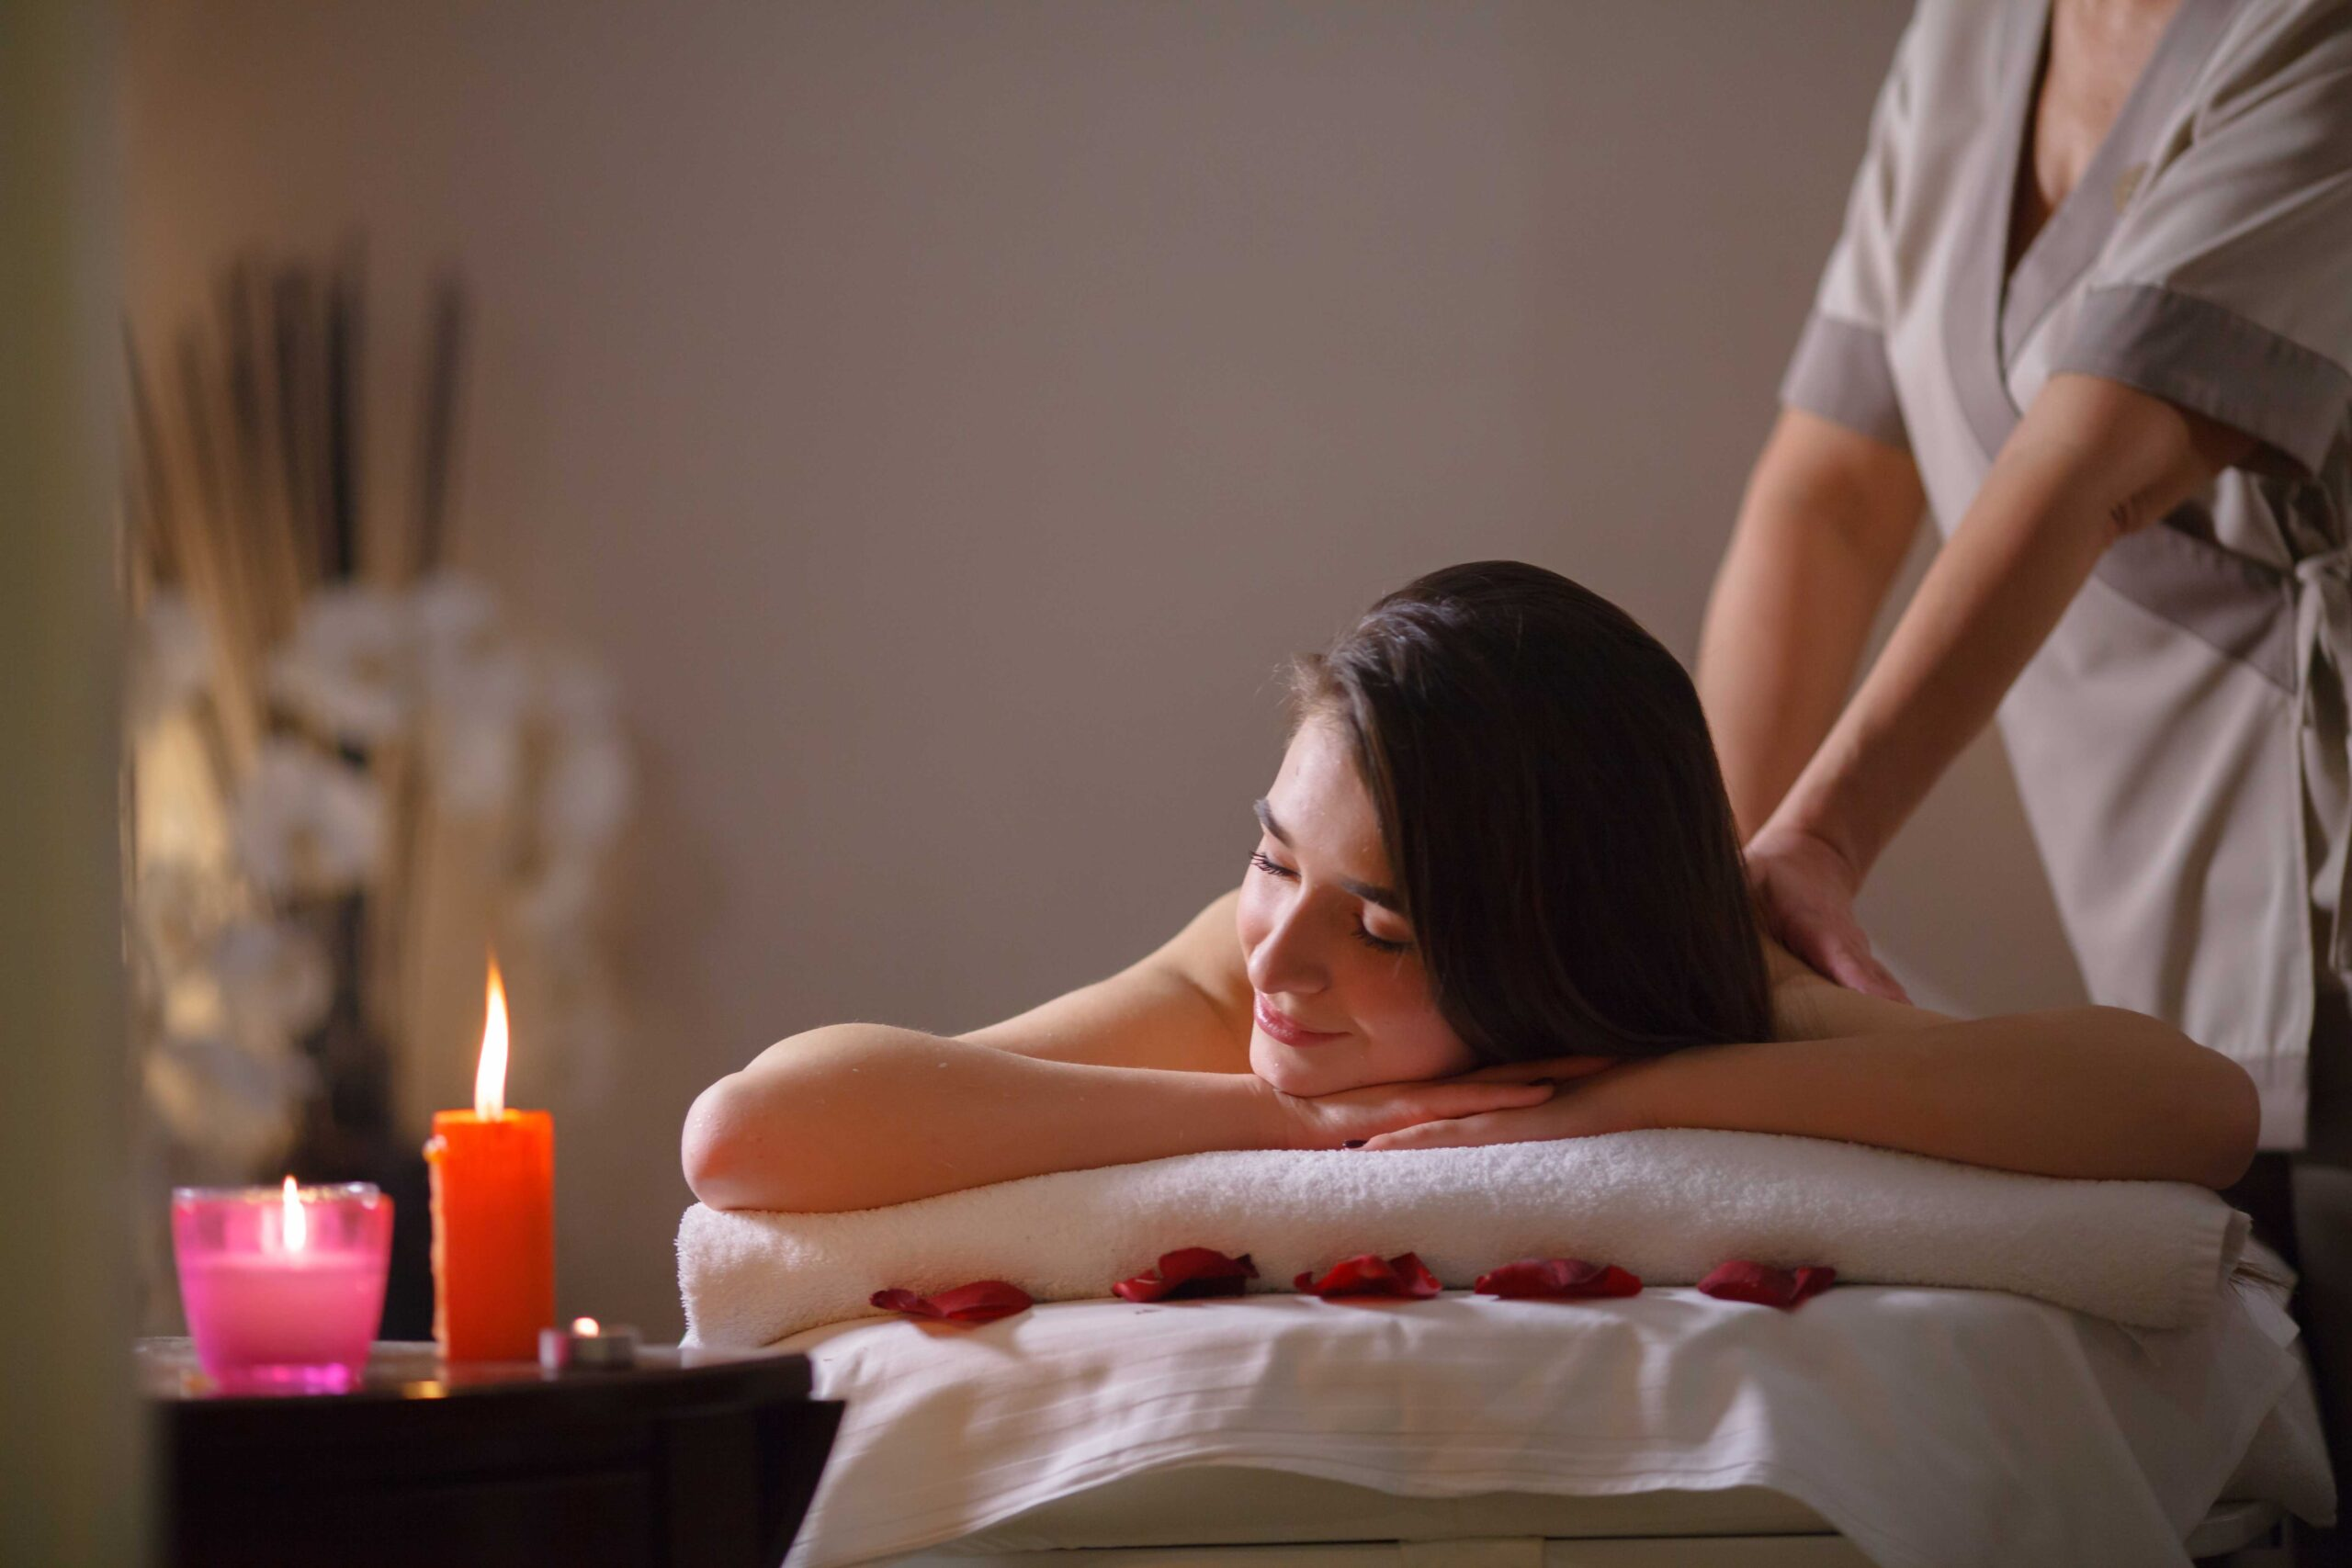 A woman getting a Balinese massage with the gentle hands of a professional masseur in a serene environment of a spa